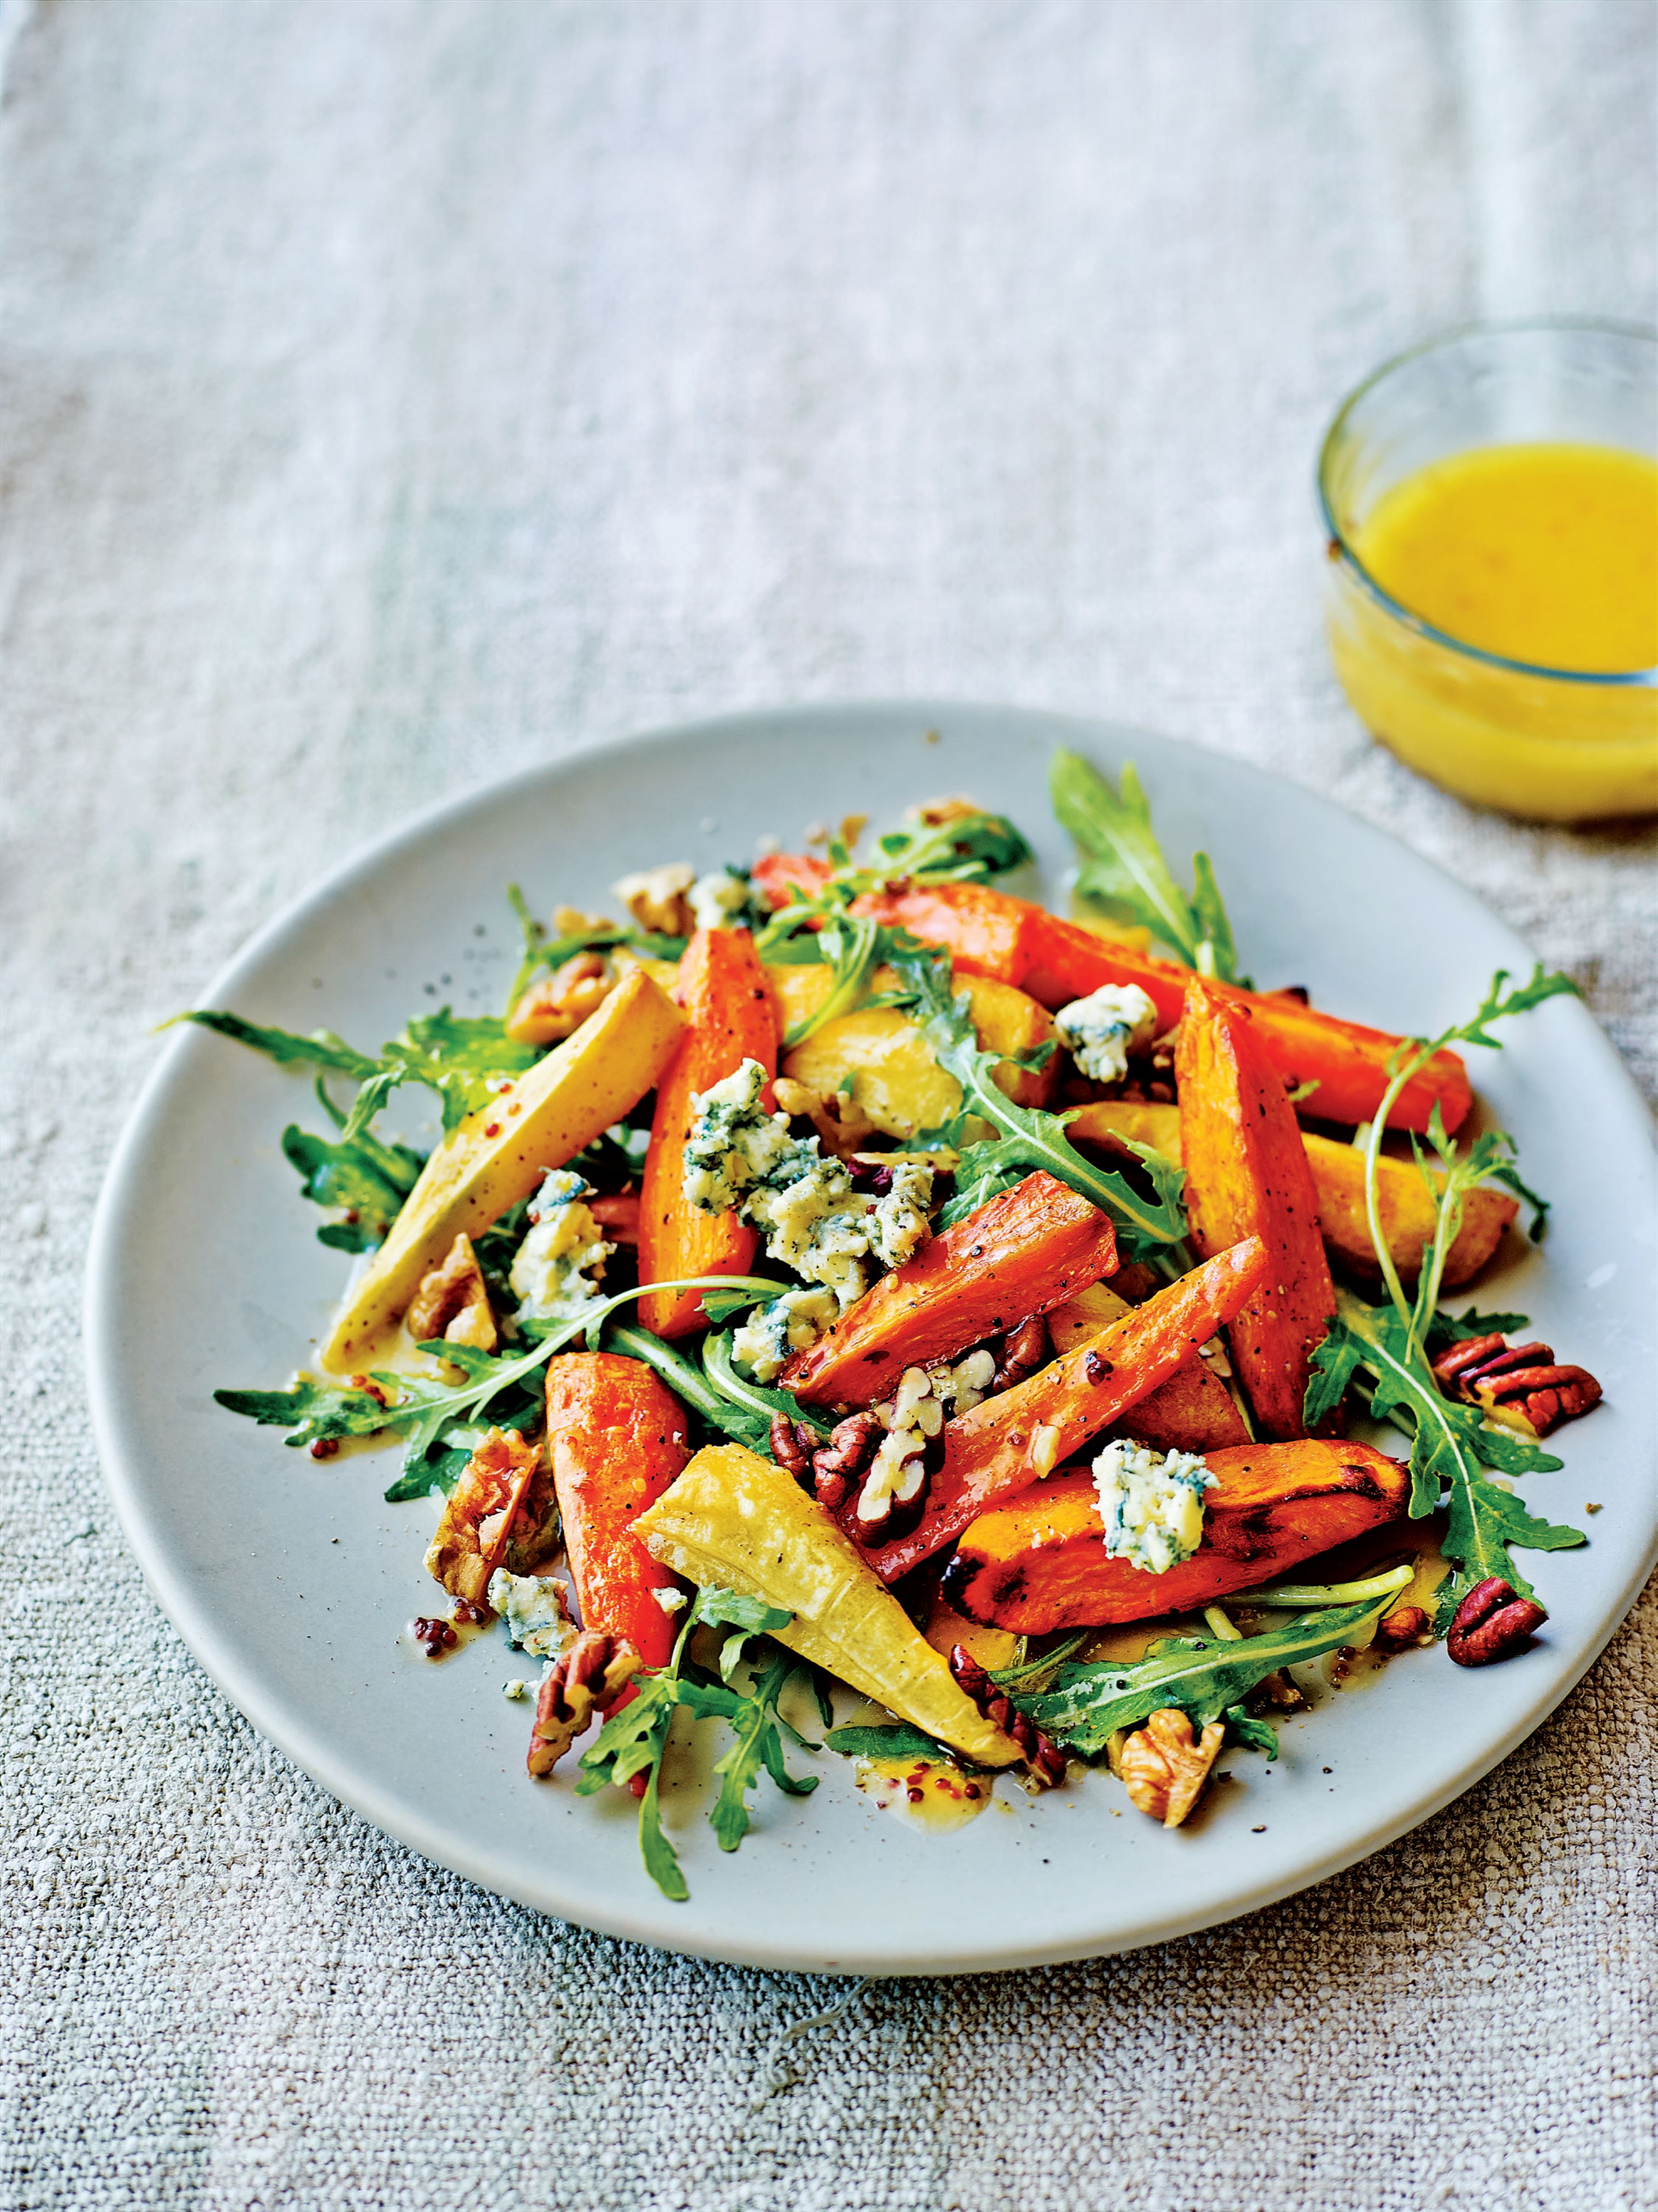 Roasted root and rocket salad with honey mustard dressing